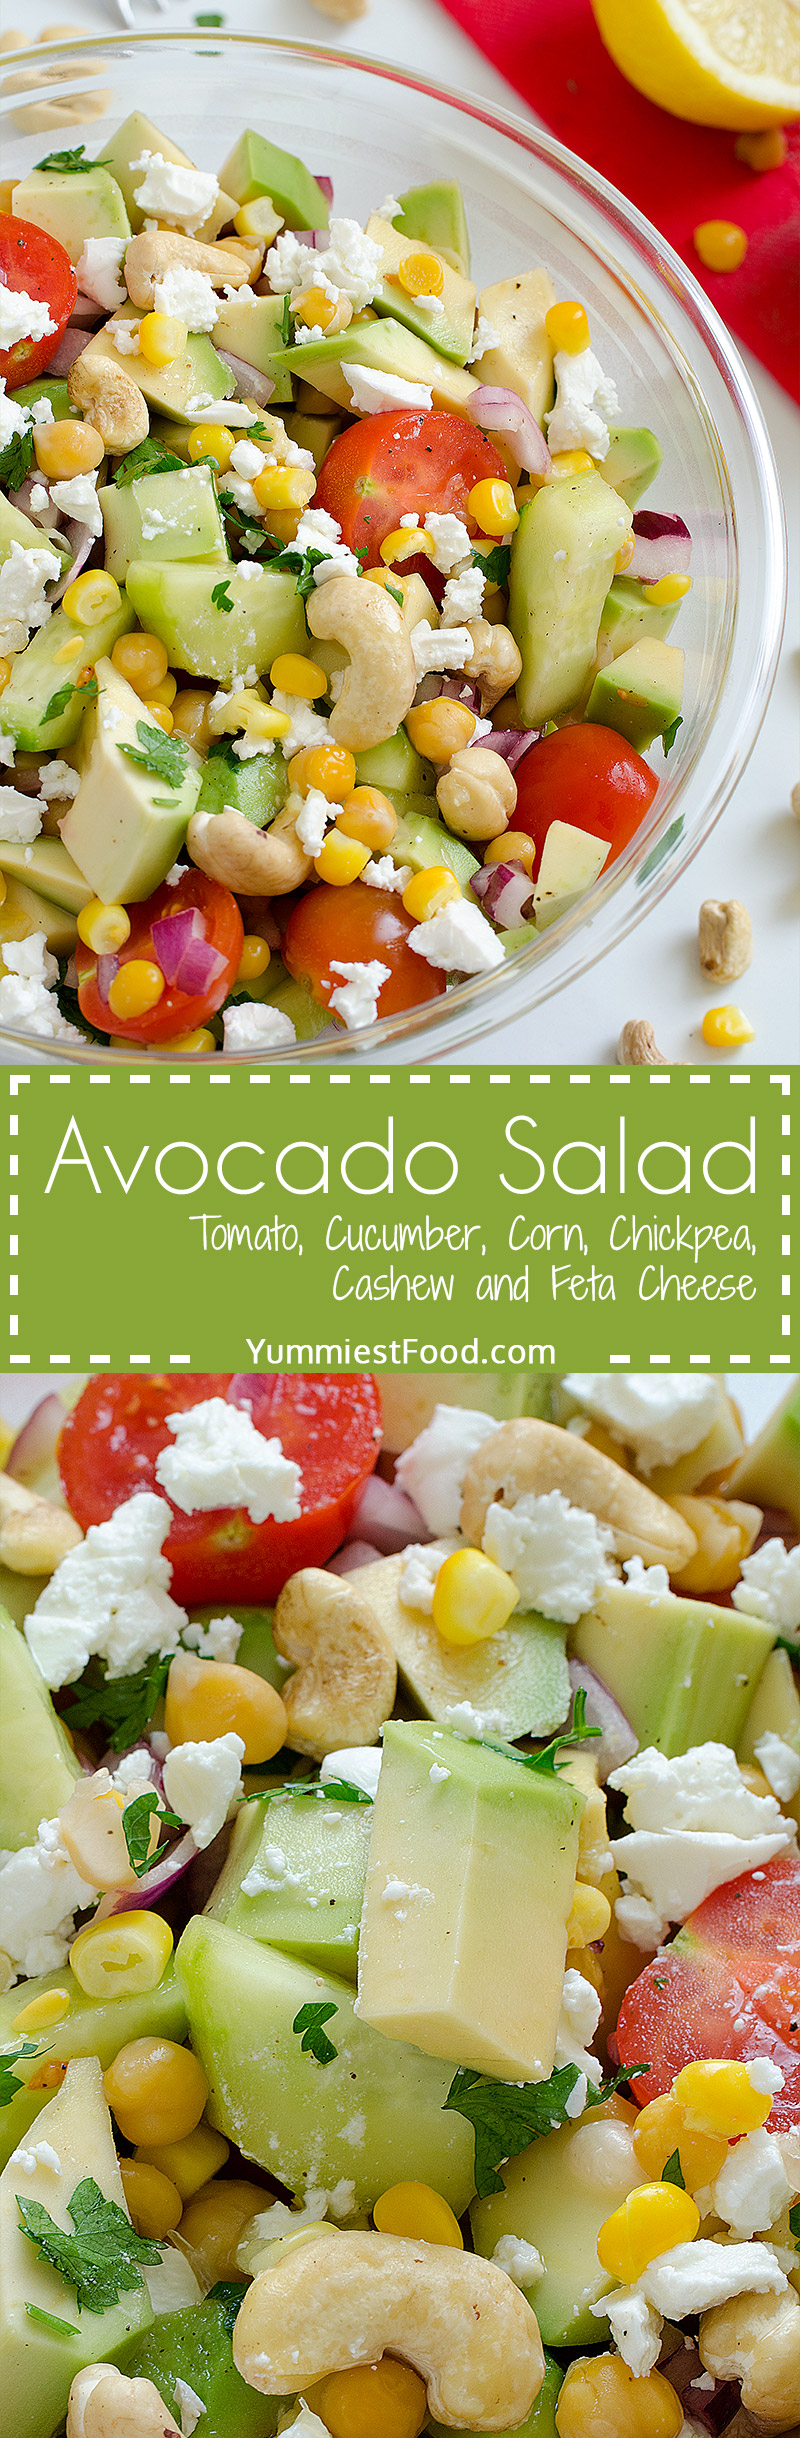 Avocado, Tomato, Cucumber, Corn, Chickpea and Cashew Salad with Feta Cheese - Light, full of healthy ingredients and perfectly refreshing.